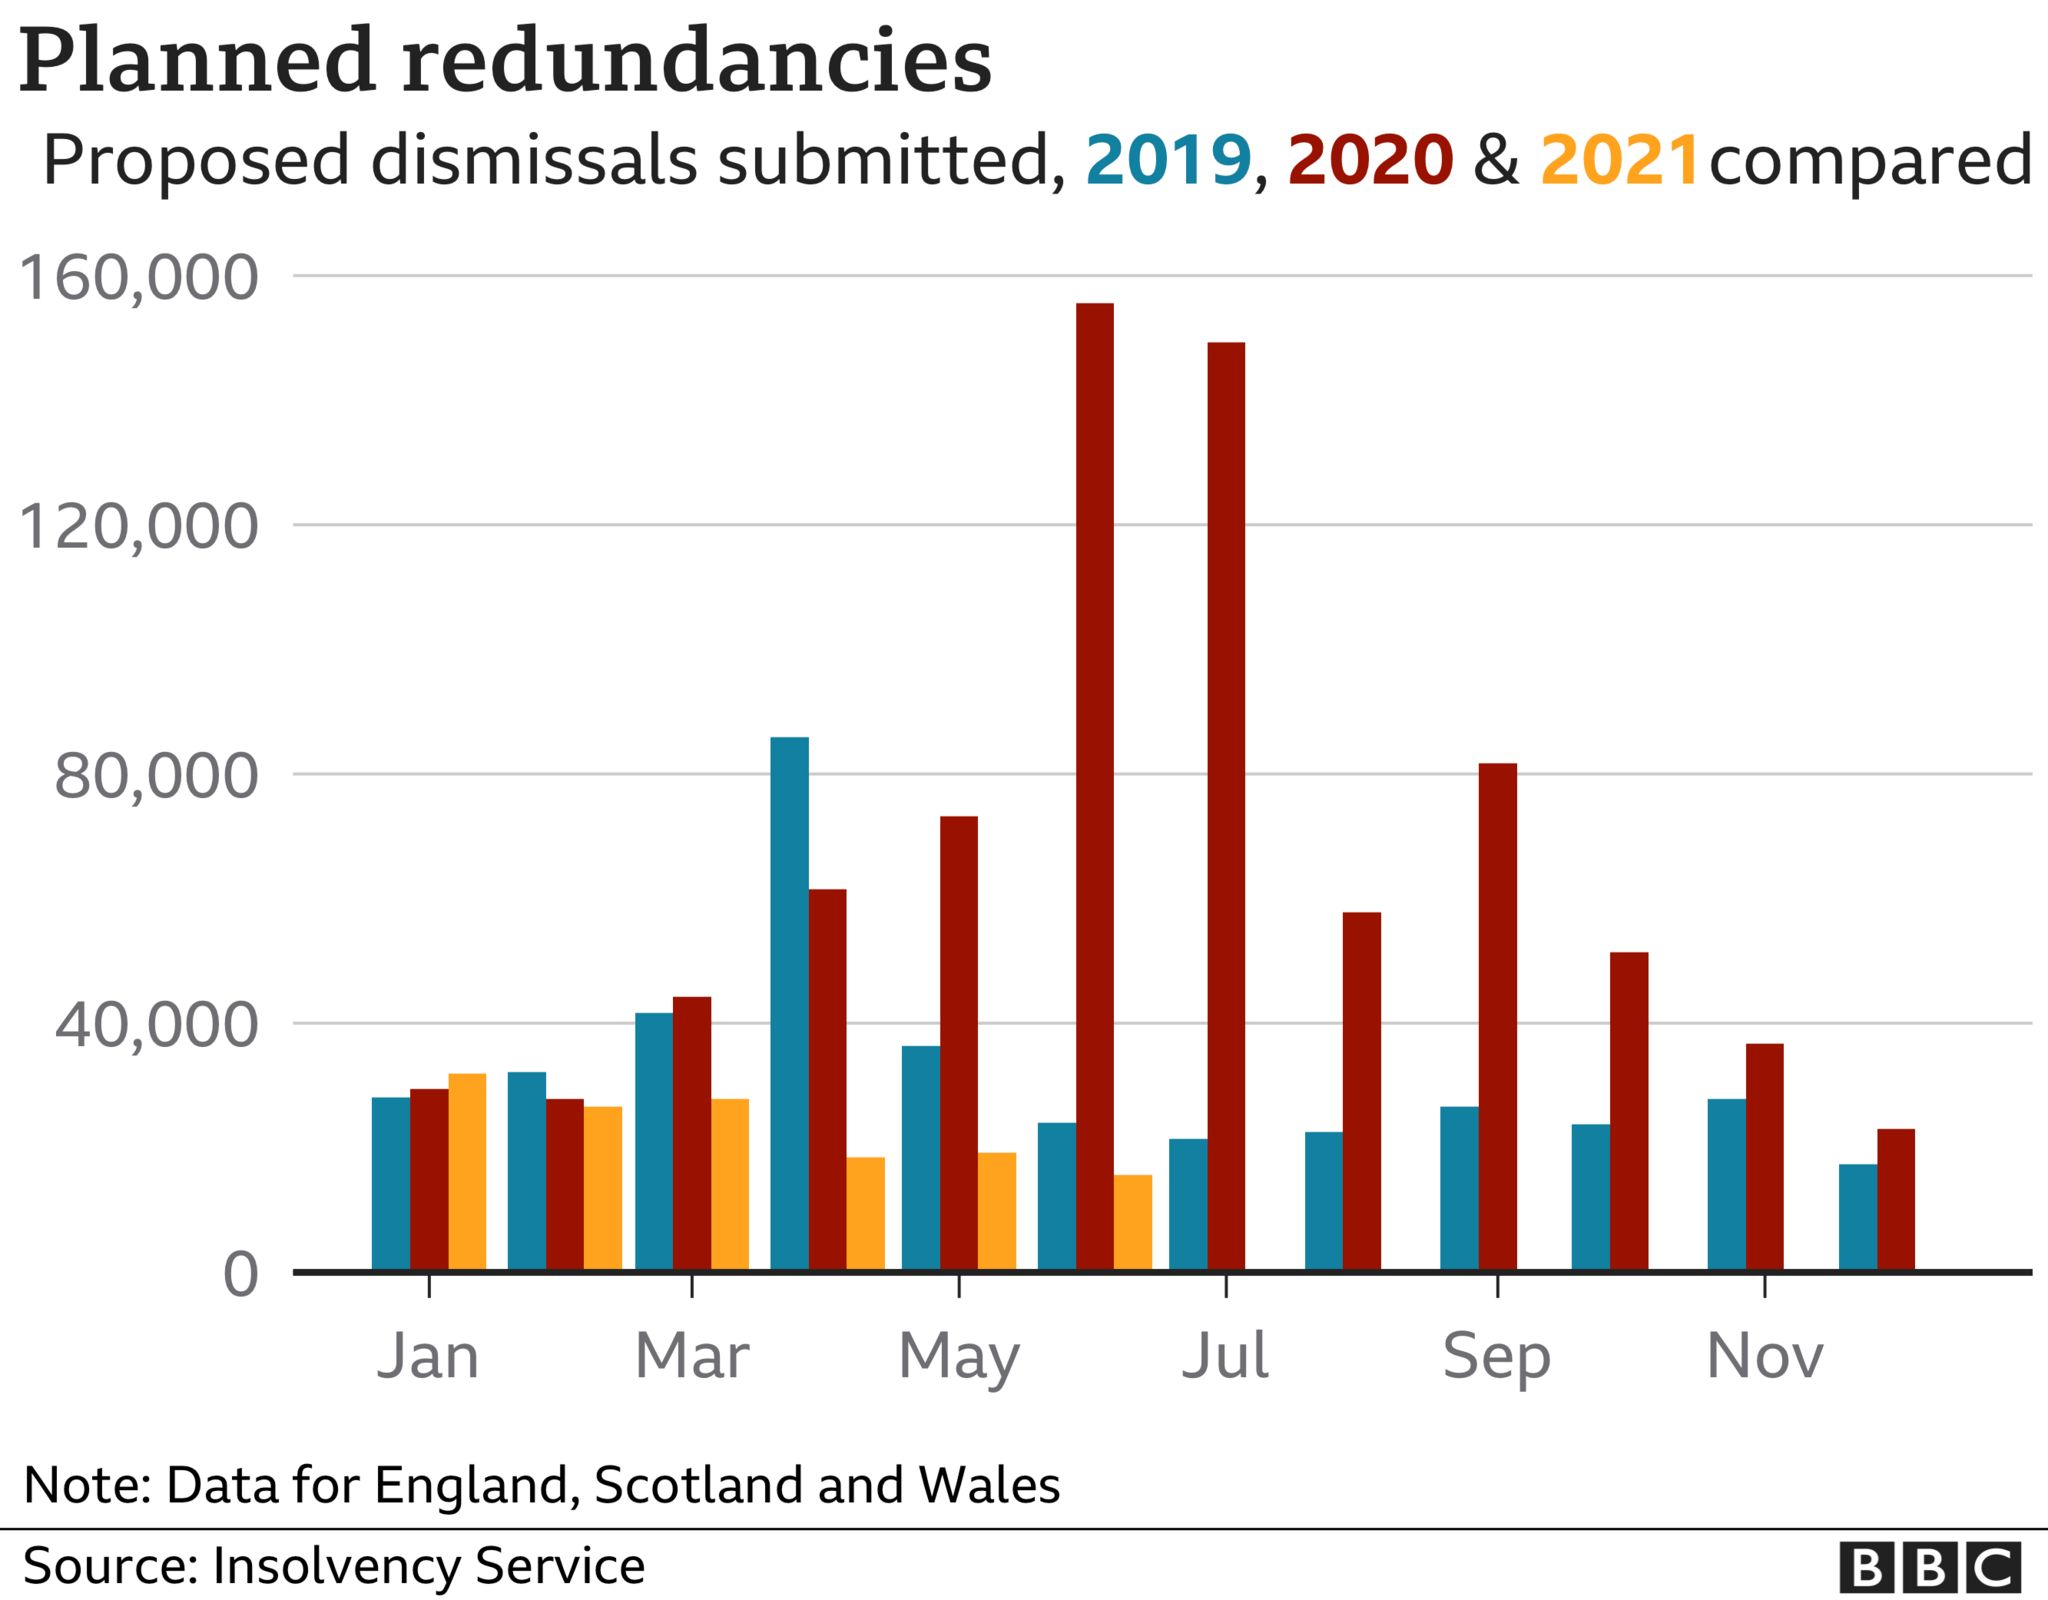 Graph of planned redundancies notified, 2019, 2020 and 2021